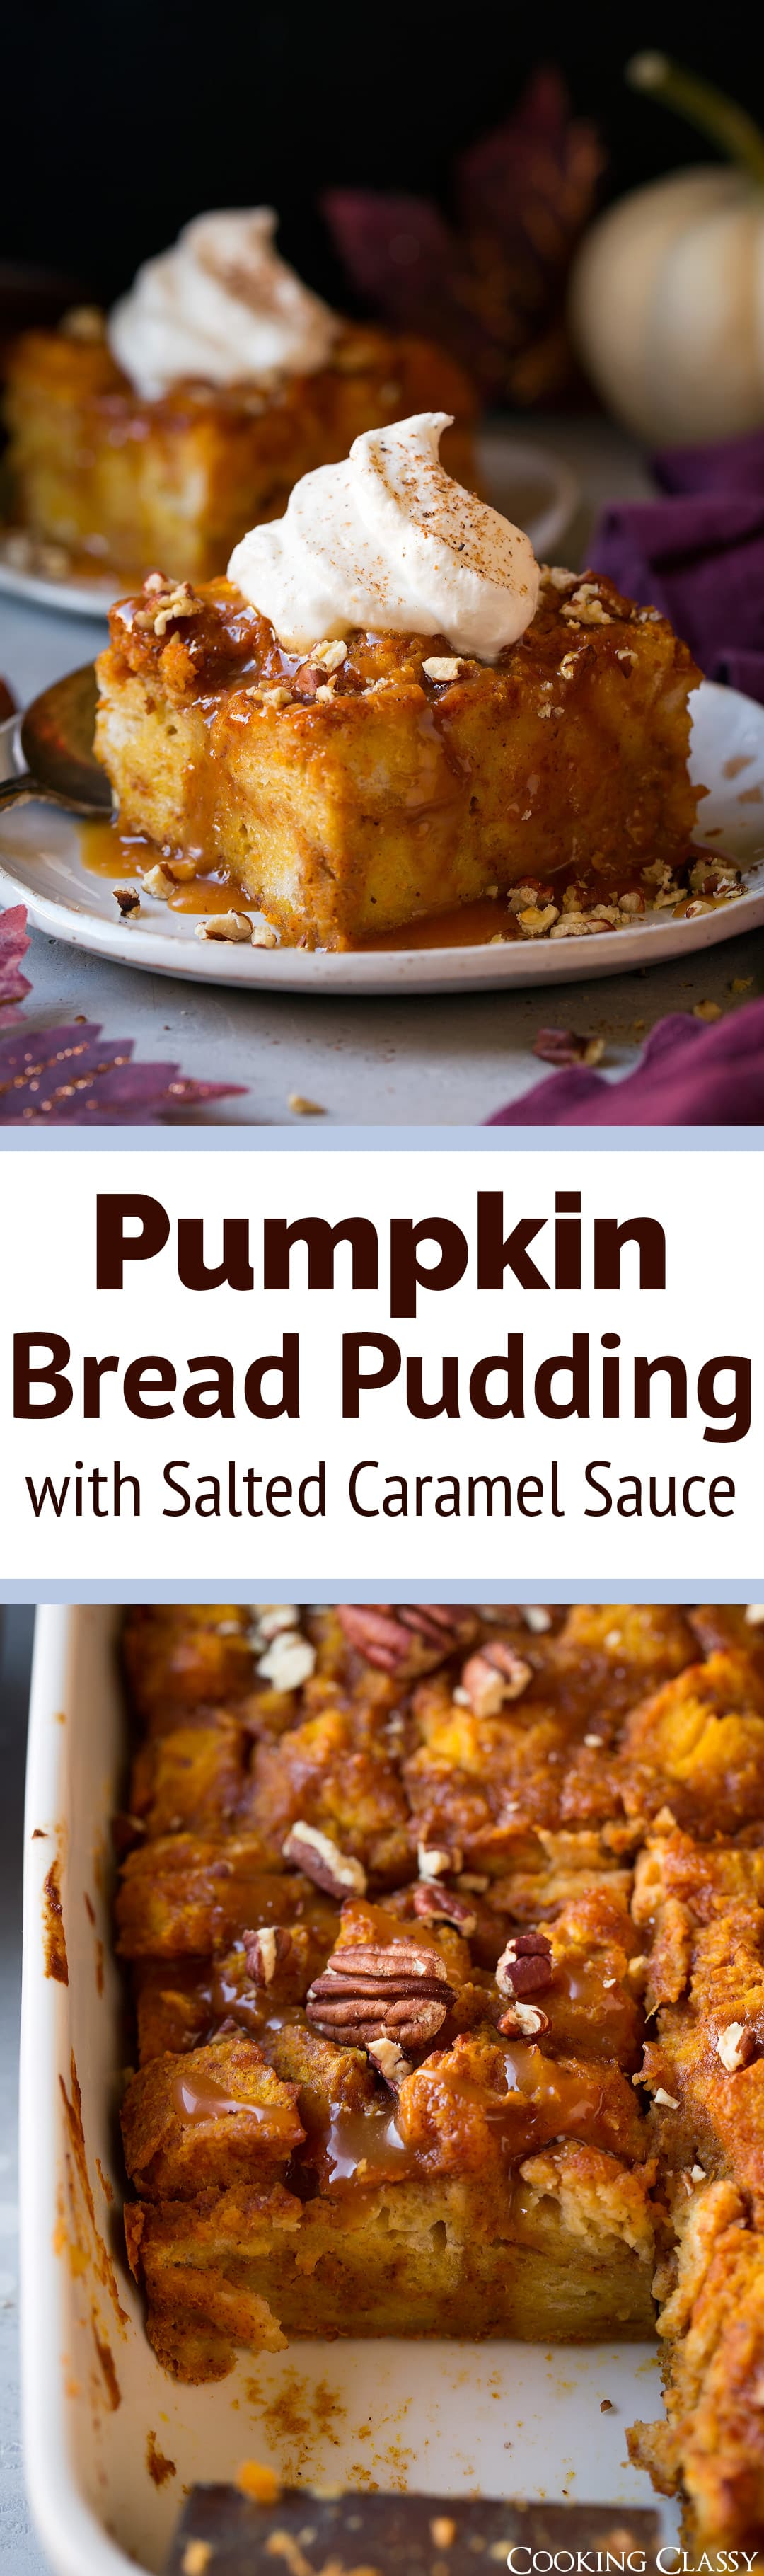 Pumpkin Bread Pudding with Salted Caramel Sauce - this is one of the BEST fall desserts around! So much decadence and it tastes just like pumpkin pie! #pumpkin #breadpudding #fall #dessert #pumpkinpie